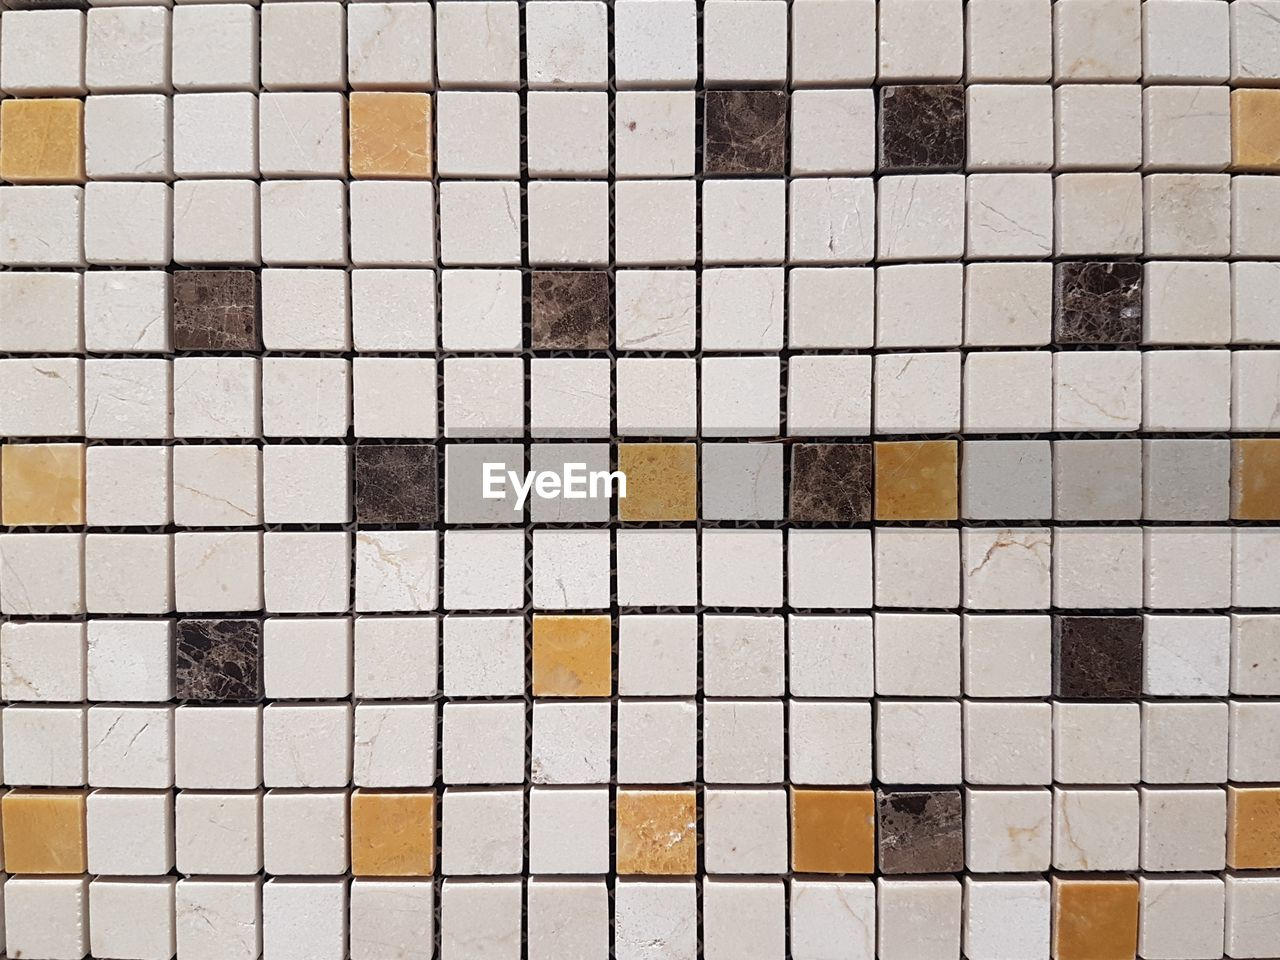 tile, pattern, full frame, backgrounds, shape, geometric shape, no people, design, flooring, square shape, multi colored, indoors, board game, leisure games, in a row, repetition, mosaic, game, chess, tiled floor